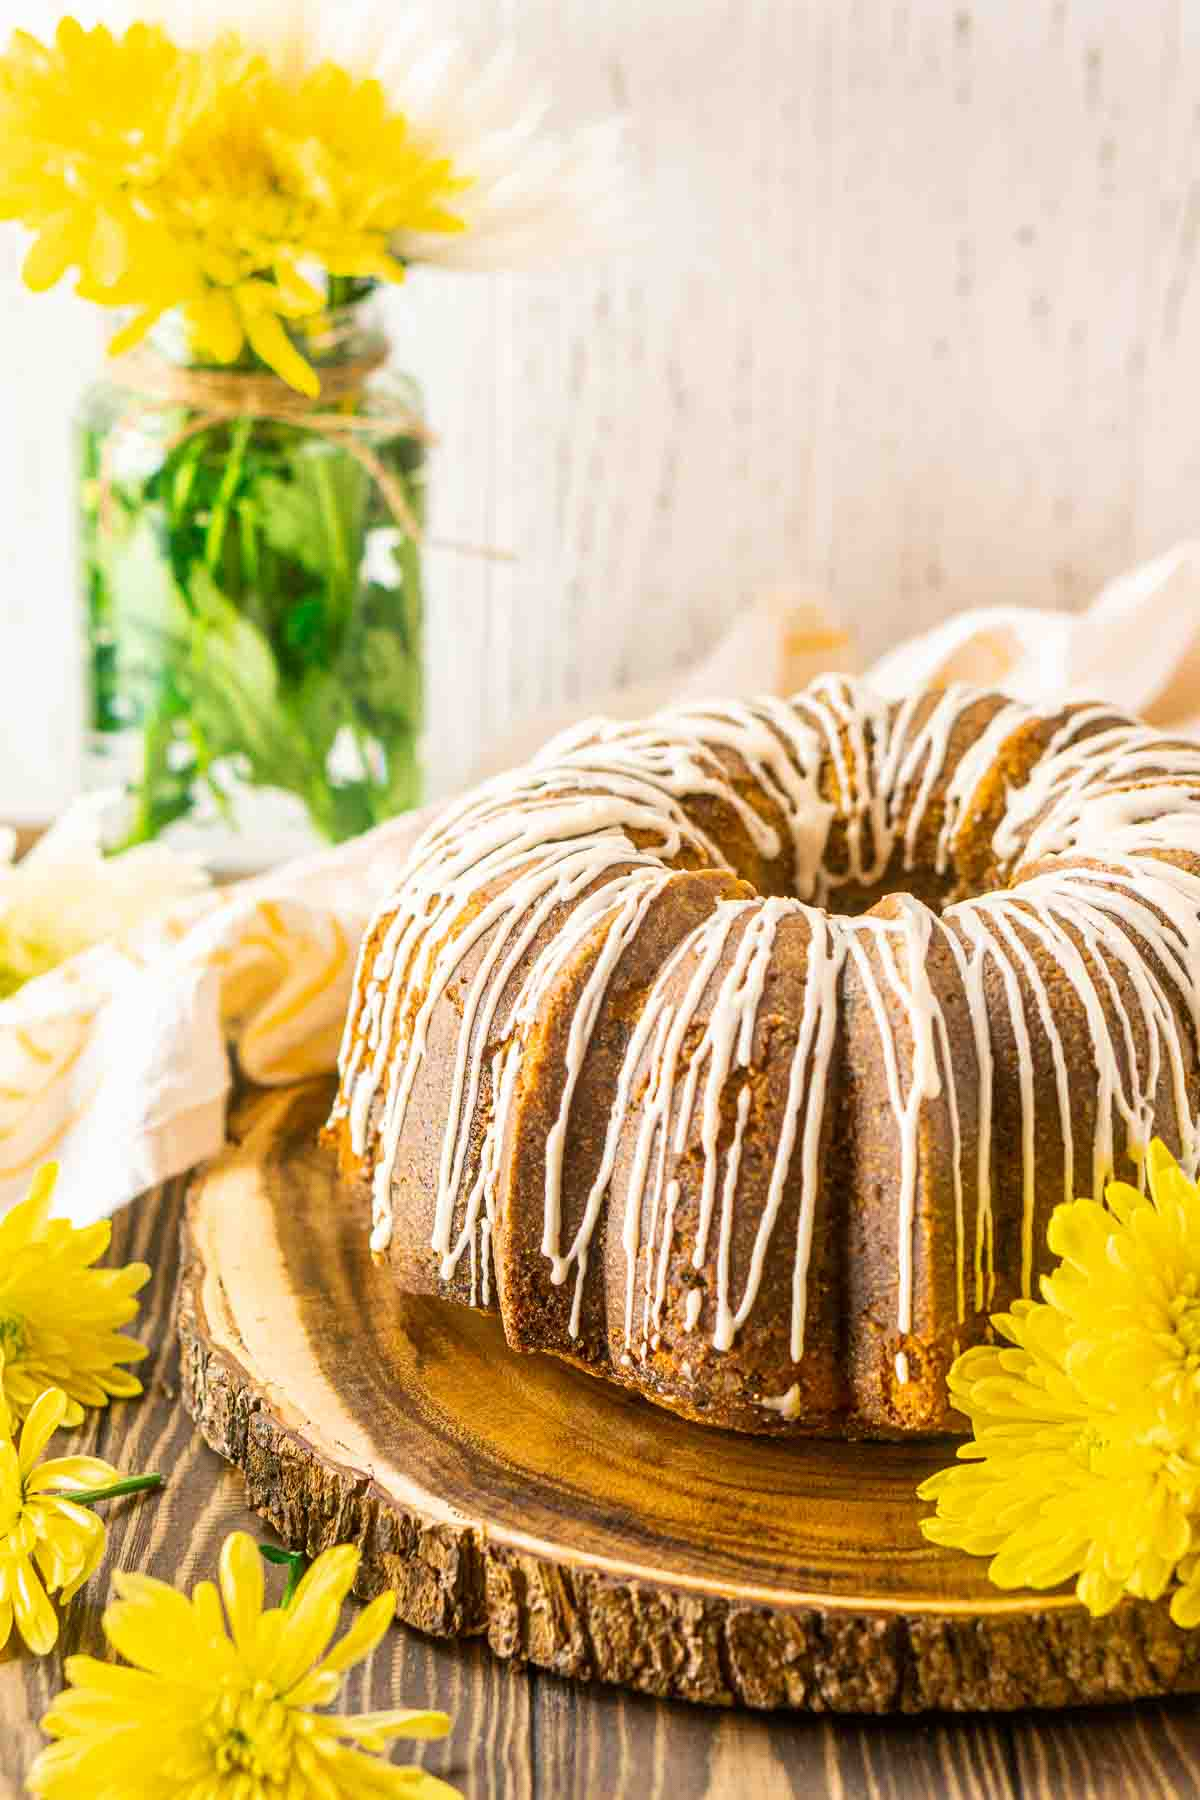 The banana pound cake on a wooden serving platter with yellow flowers to the side.